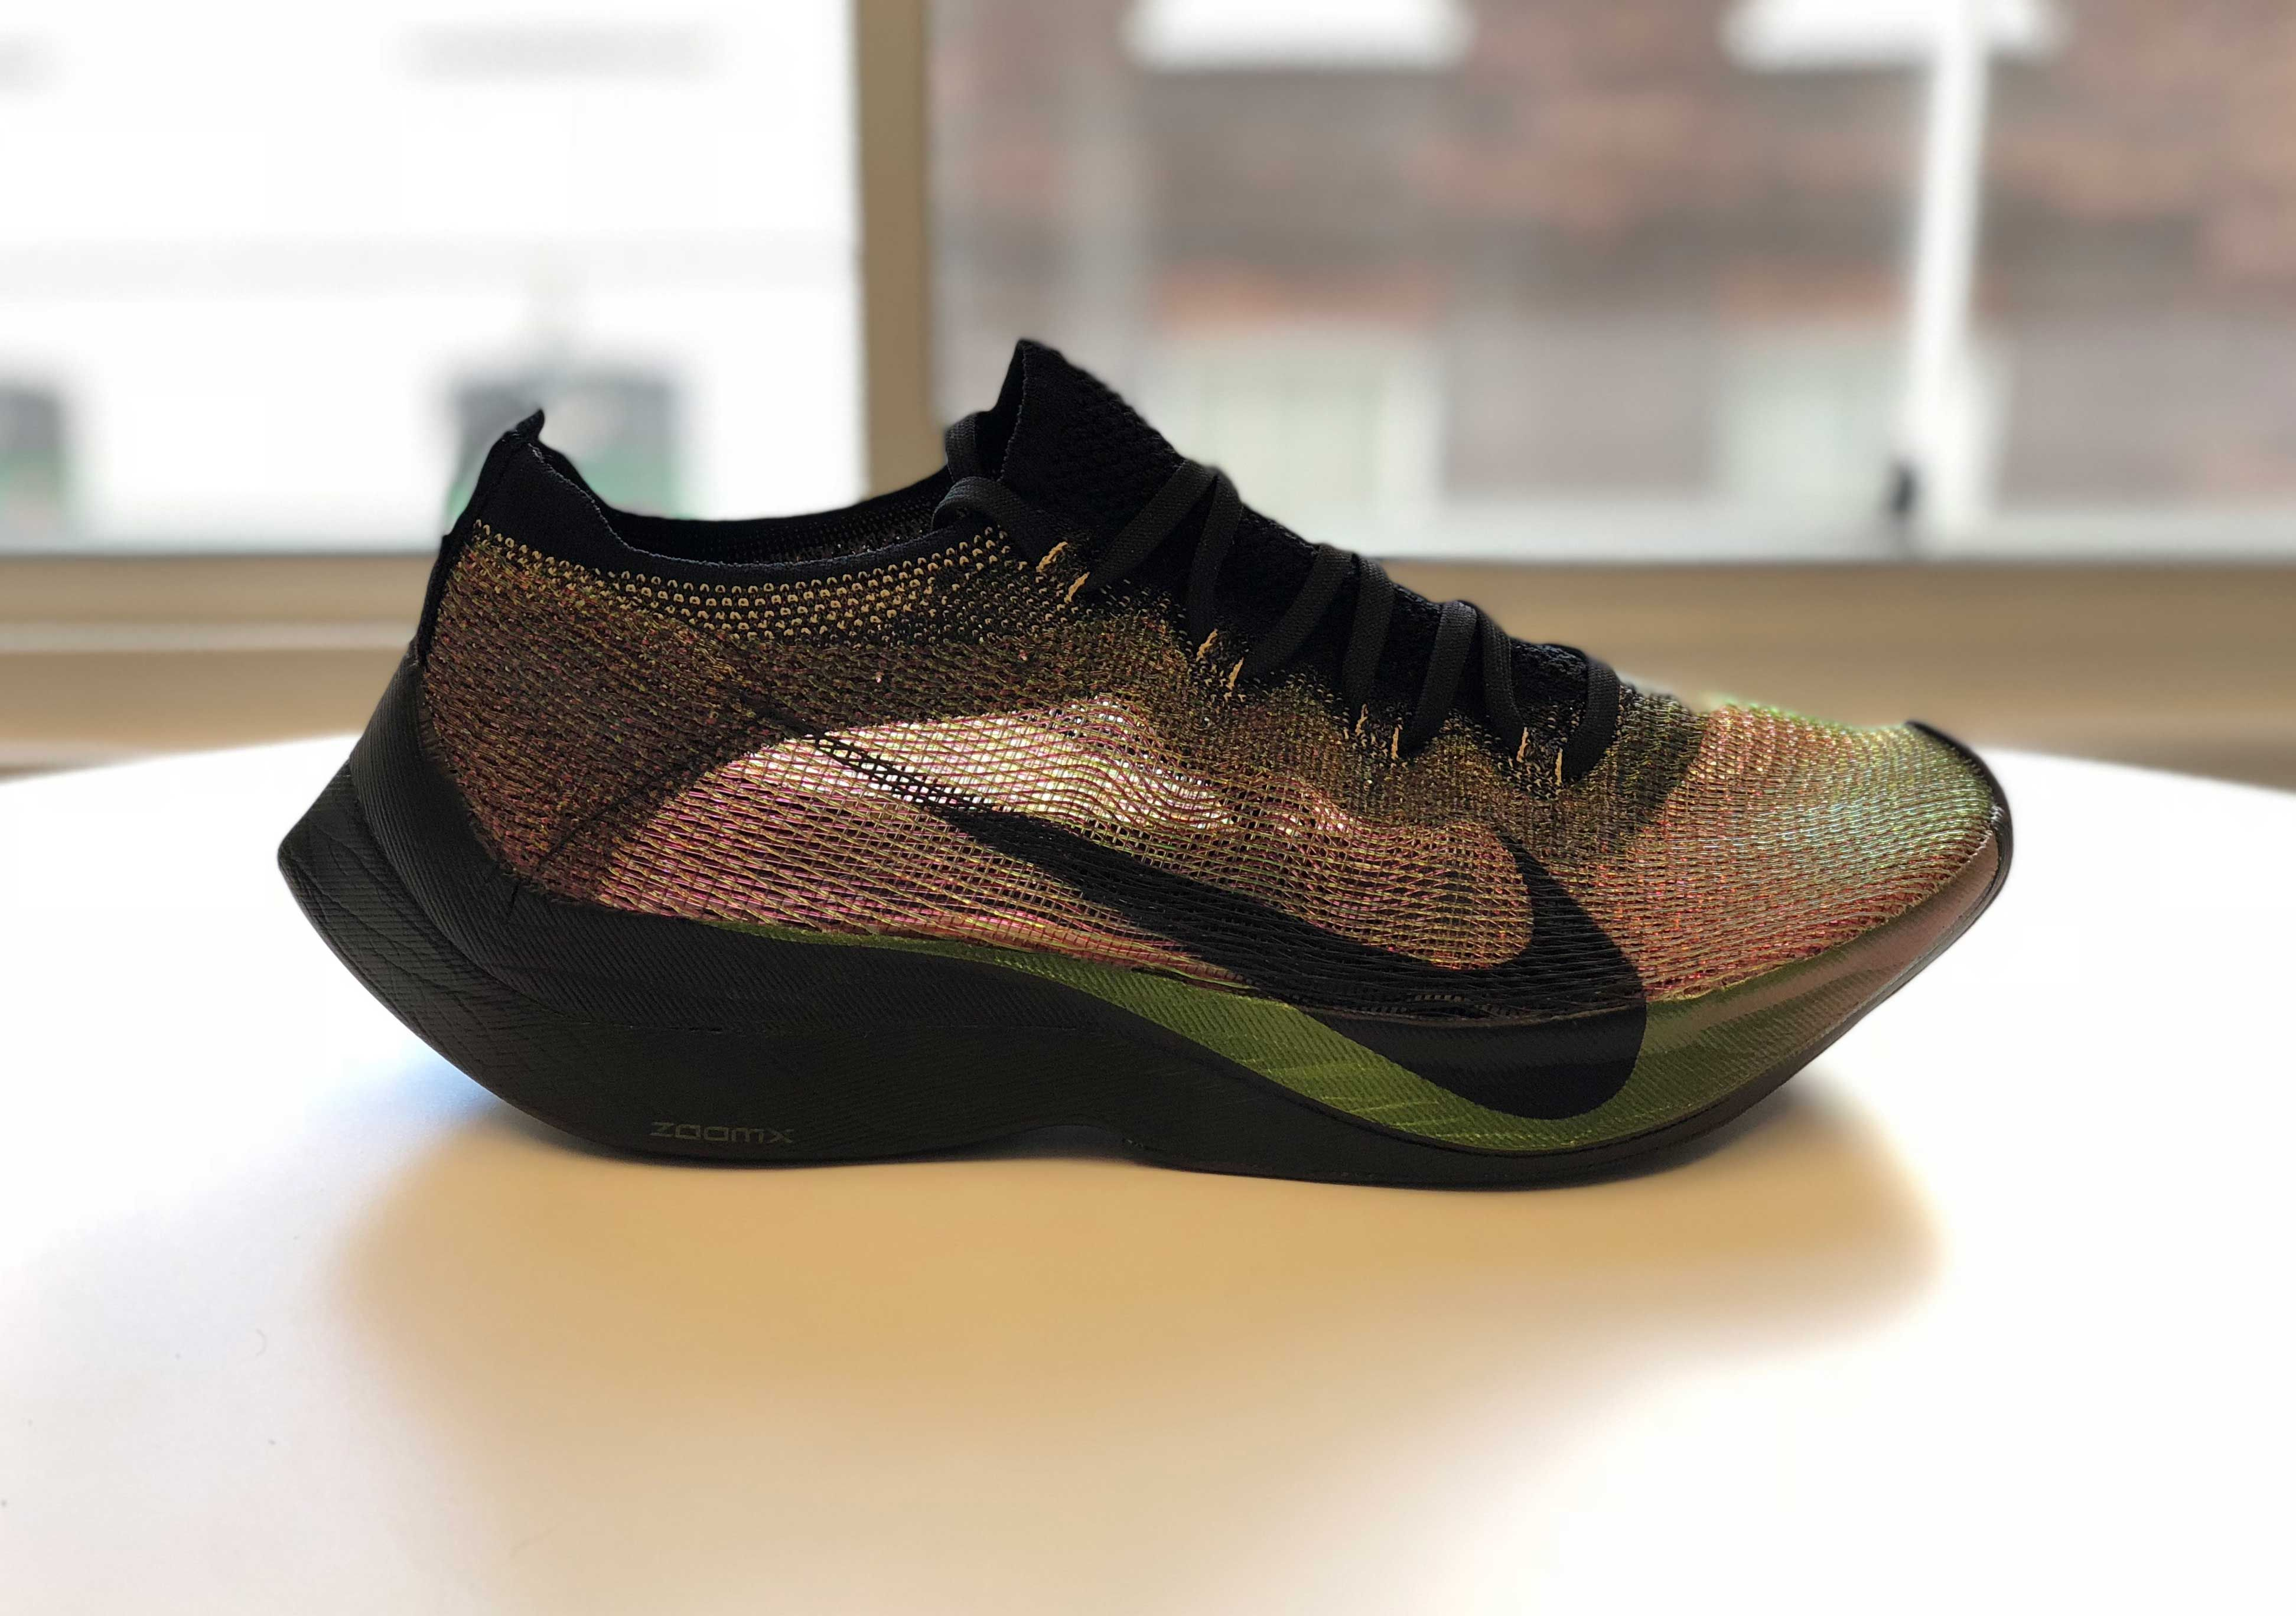 98a66e744bc First look - the brand new Nike Zoom Vaporfly Elite Flyprint running shoe